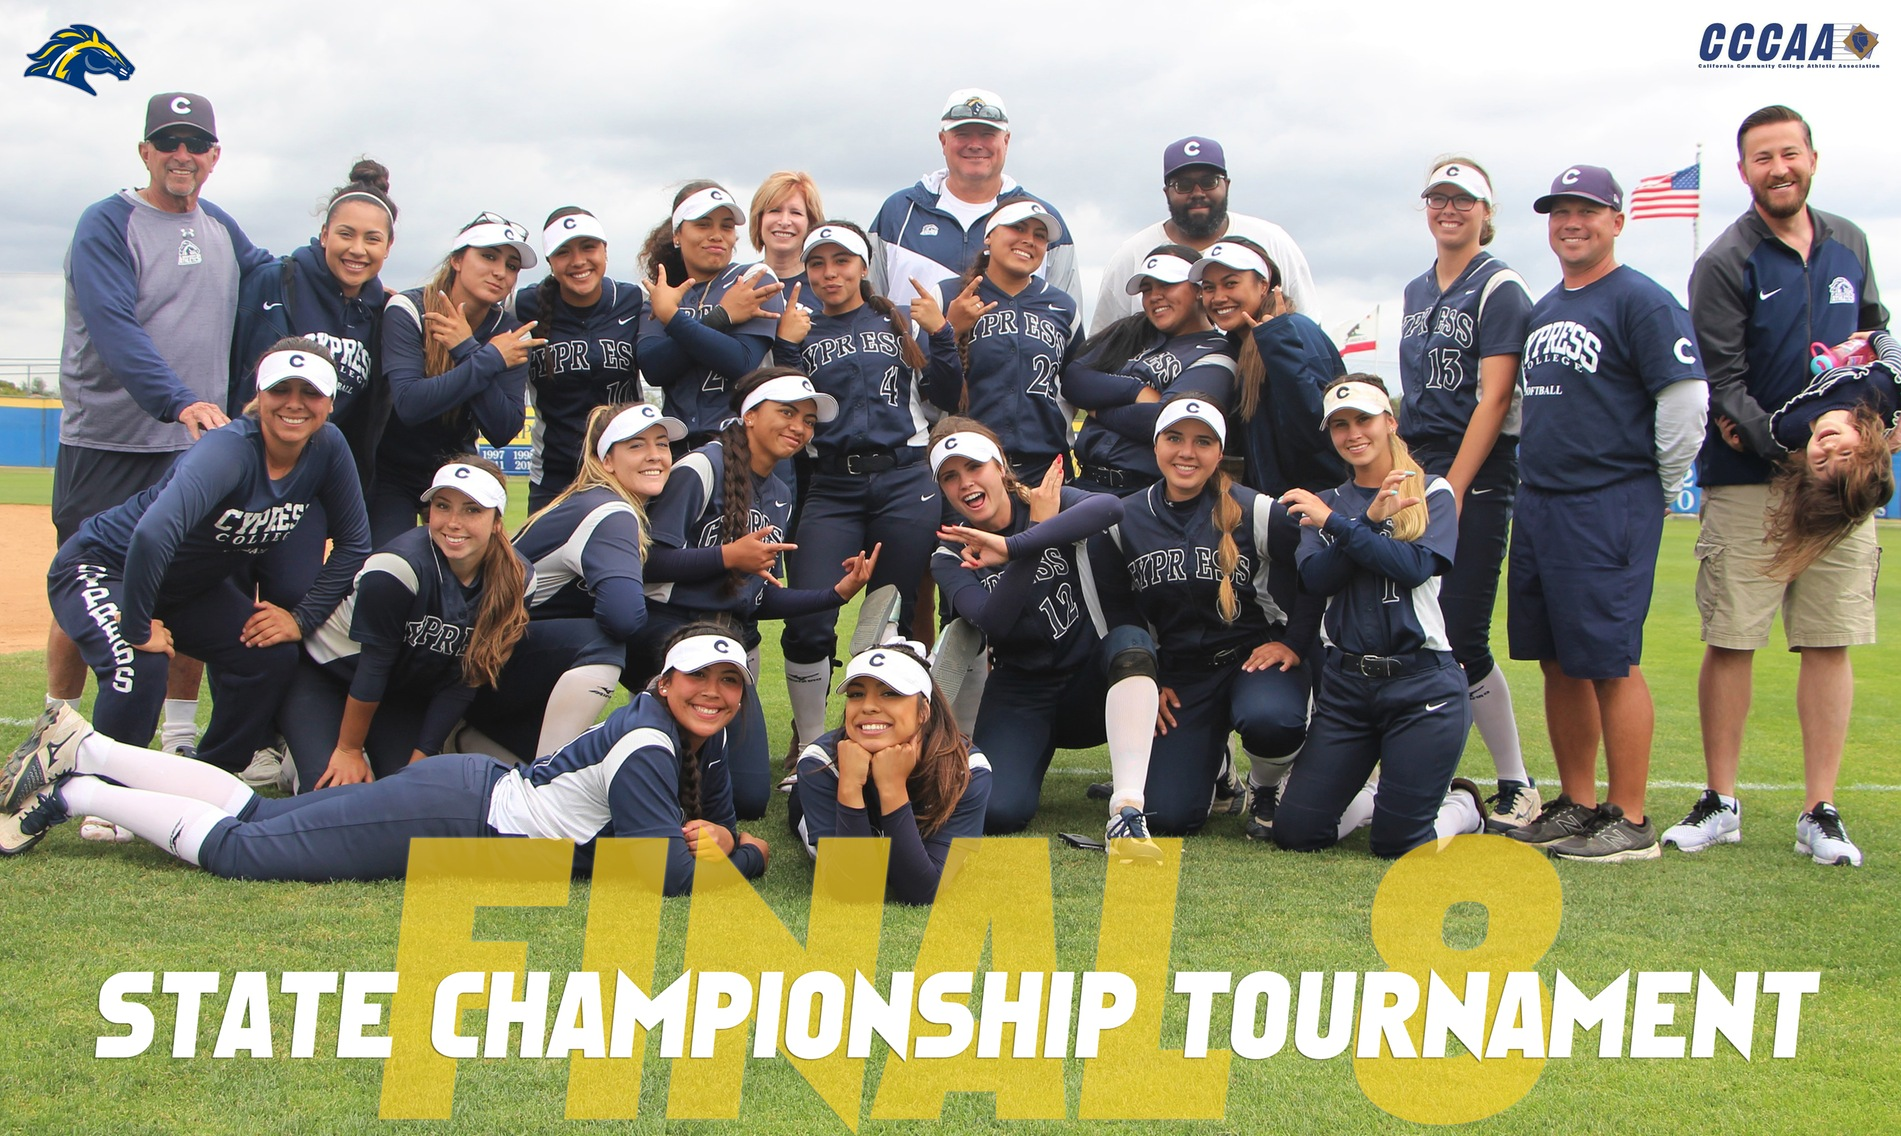 Lady Chargers Punch Ticket to 2018 CCCAA State Championships